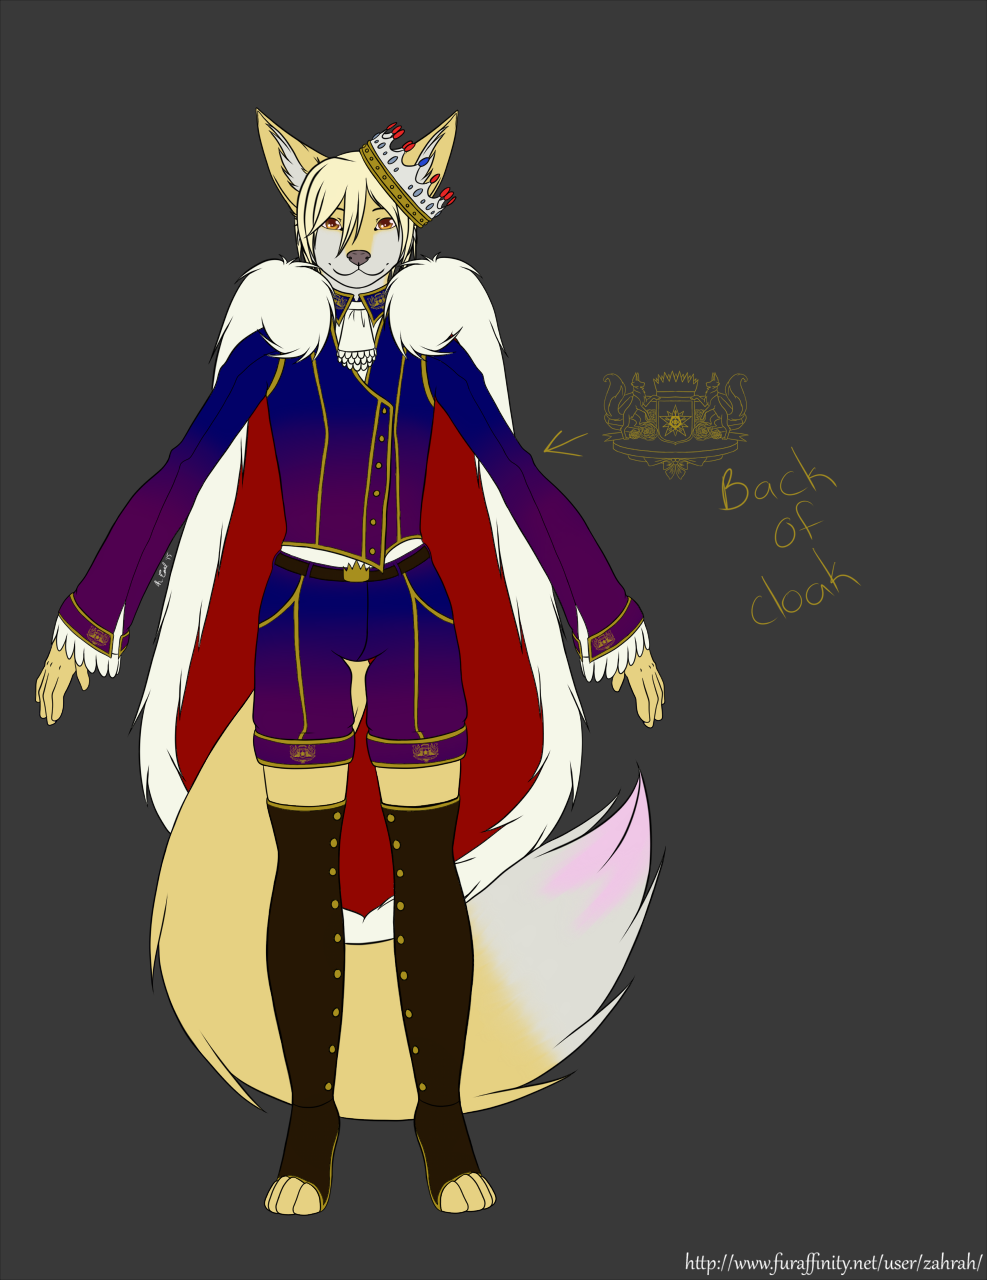 [Contest Entry] Prince Rigel's Outfit